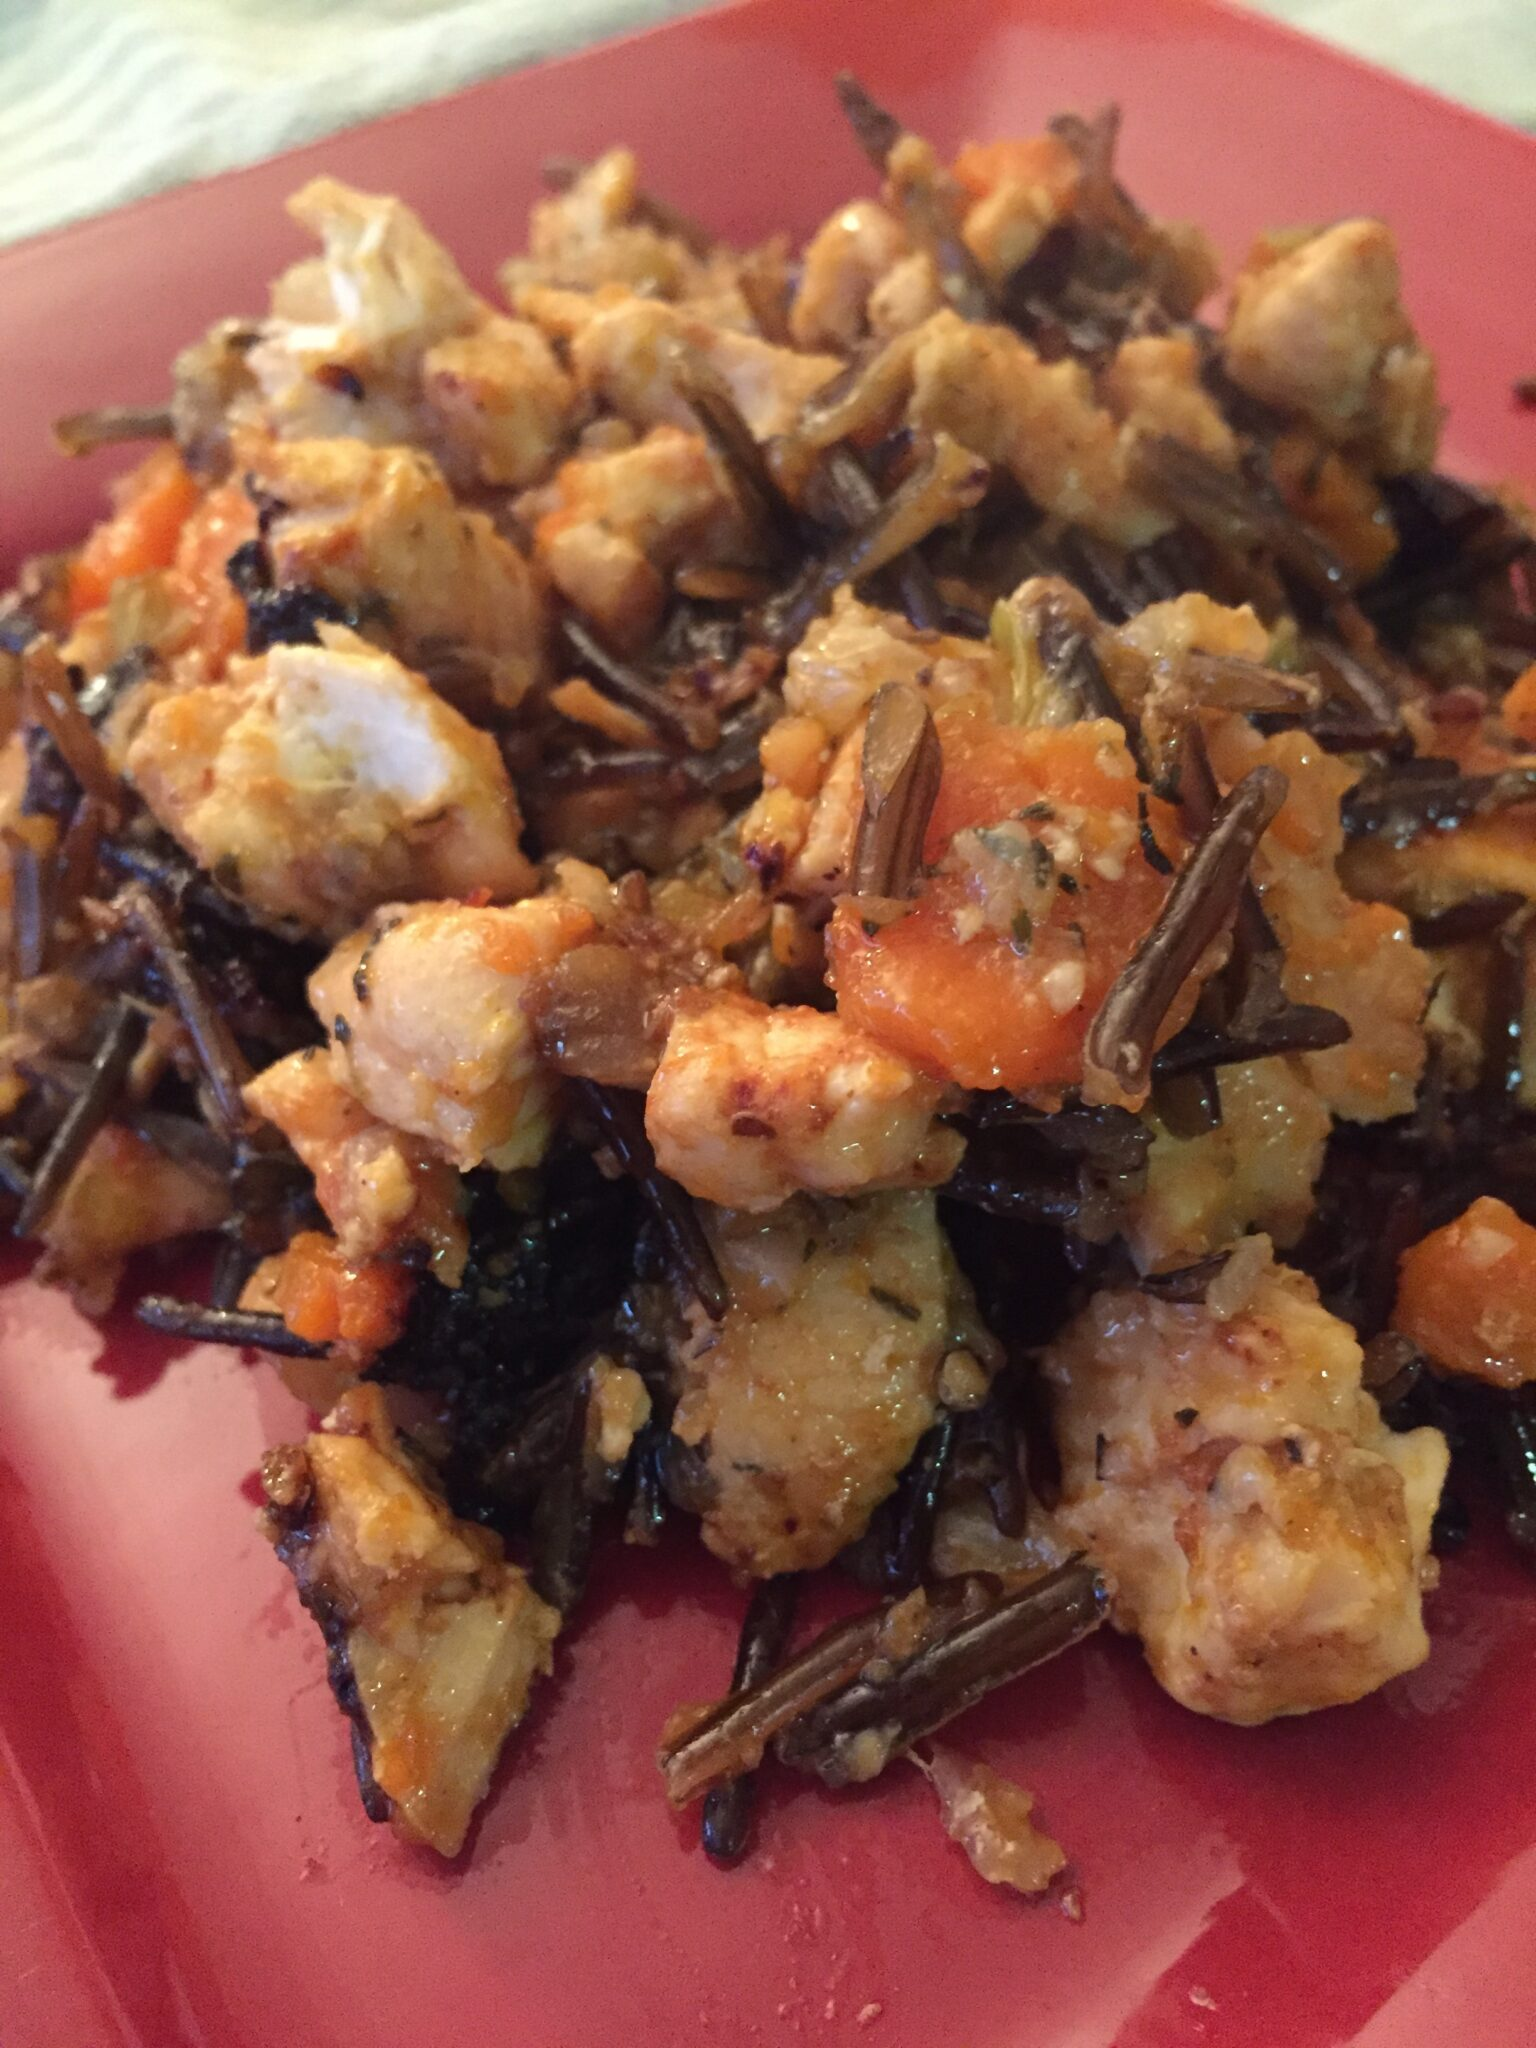 25 Cloves of Garlic…. In This Chicken and Wild Rice